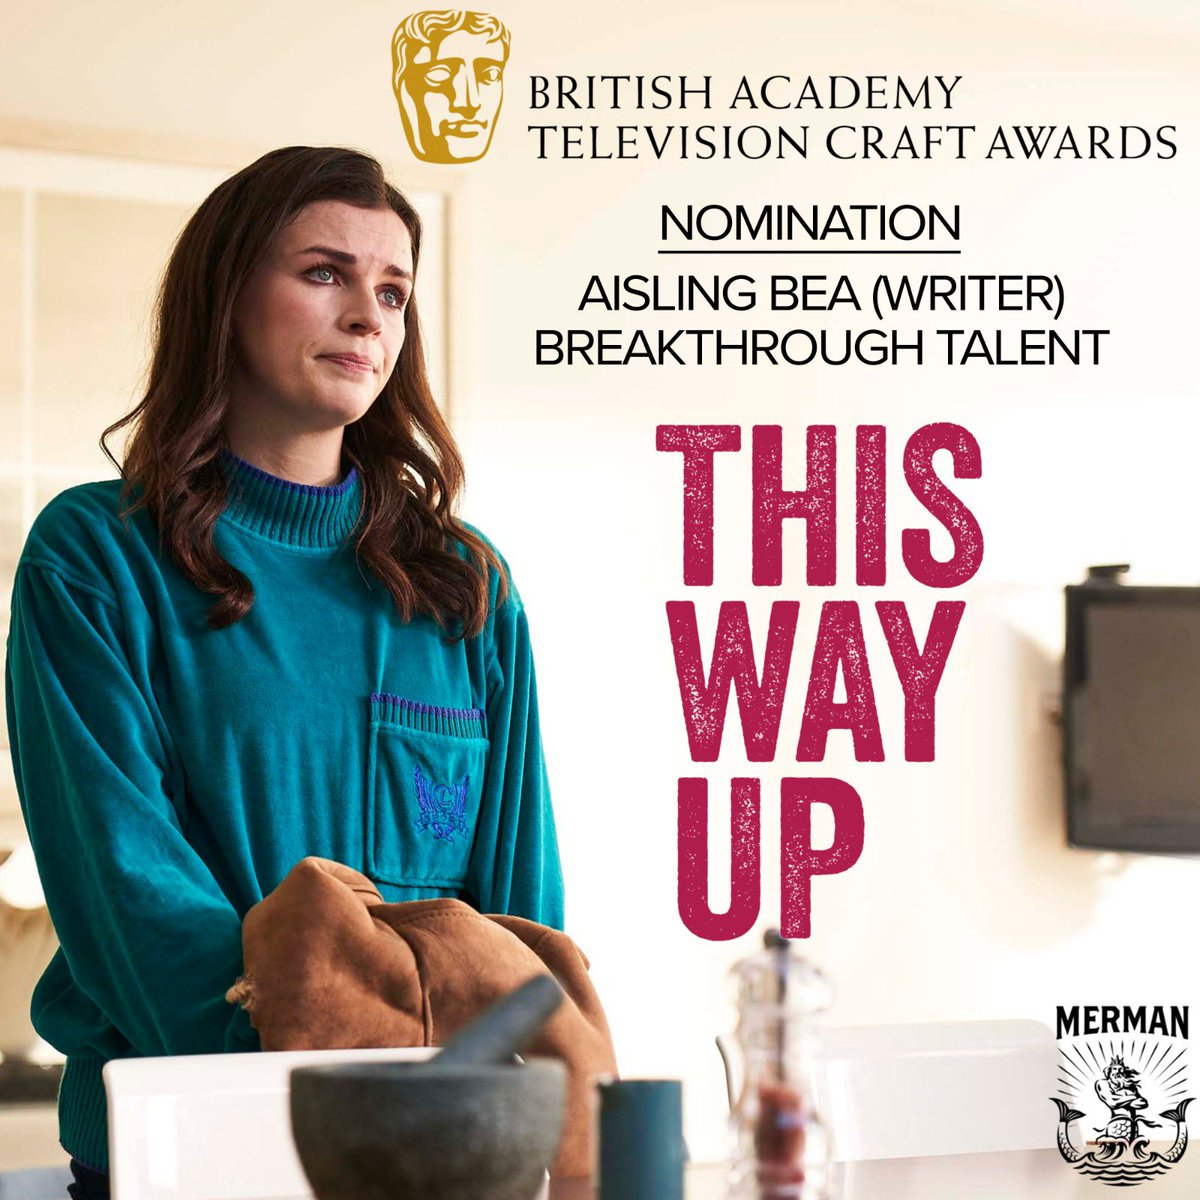 Aisling Bea (@WeeMissBea) has been nominated for the Breakthrough Talent Award for her work as the writer of This Way Up in the 2020 BAFTA Television Craft Awards (@BAFTA). https://t.co/gaREJSHD2c